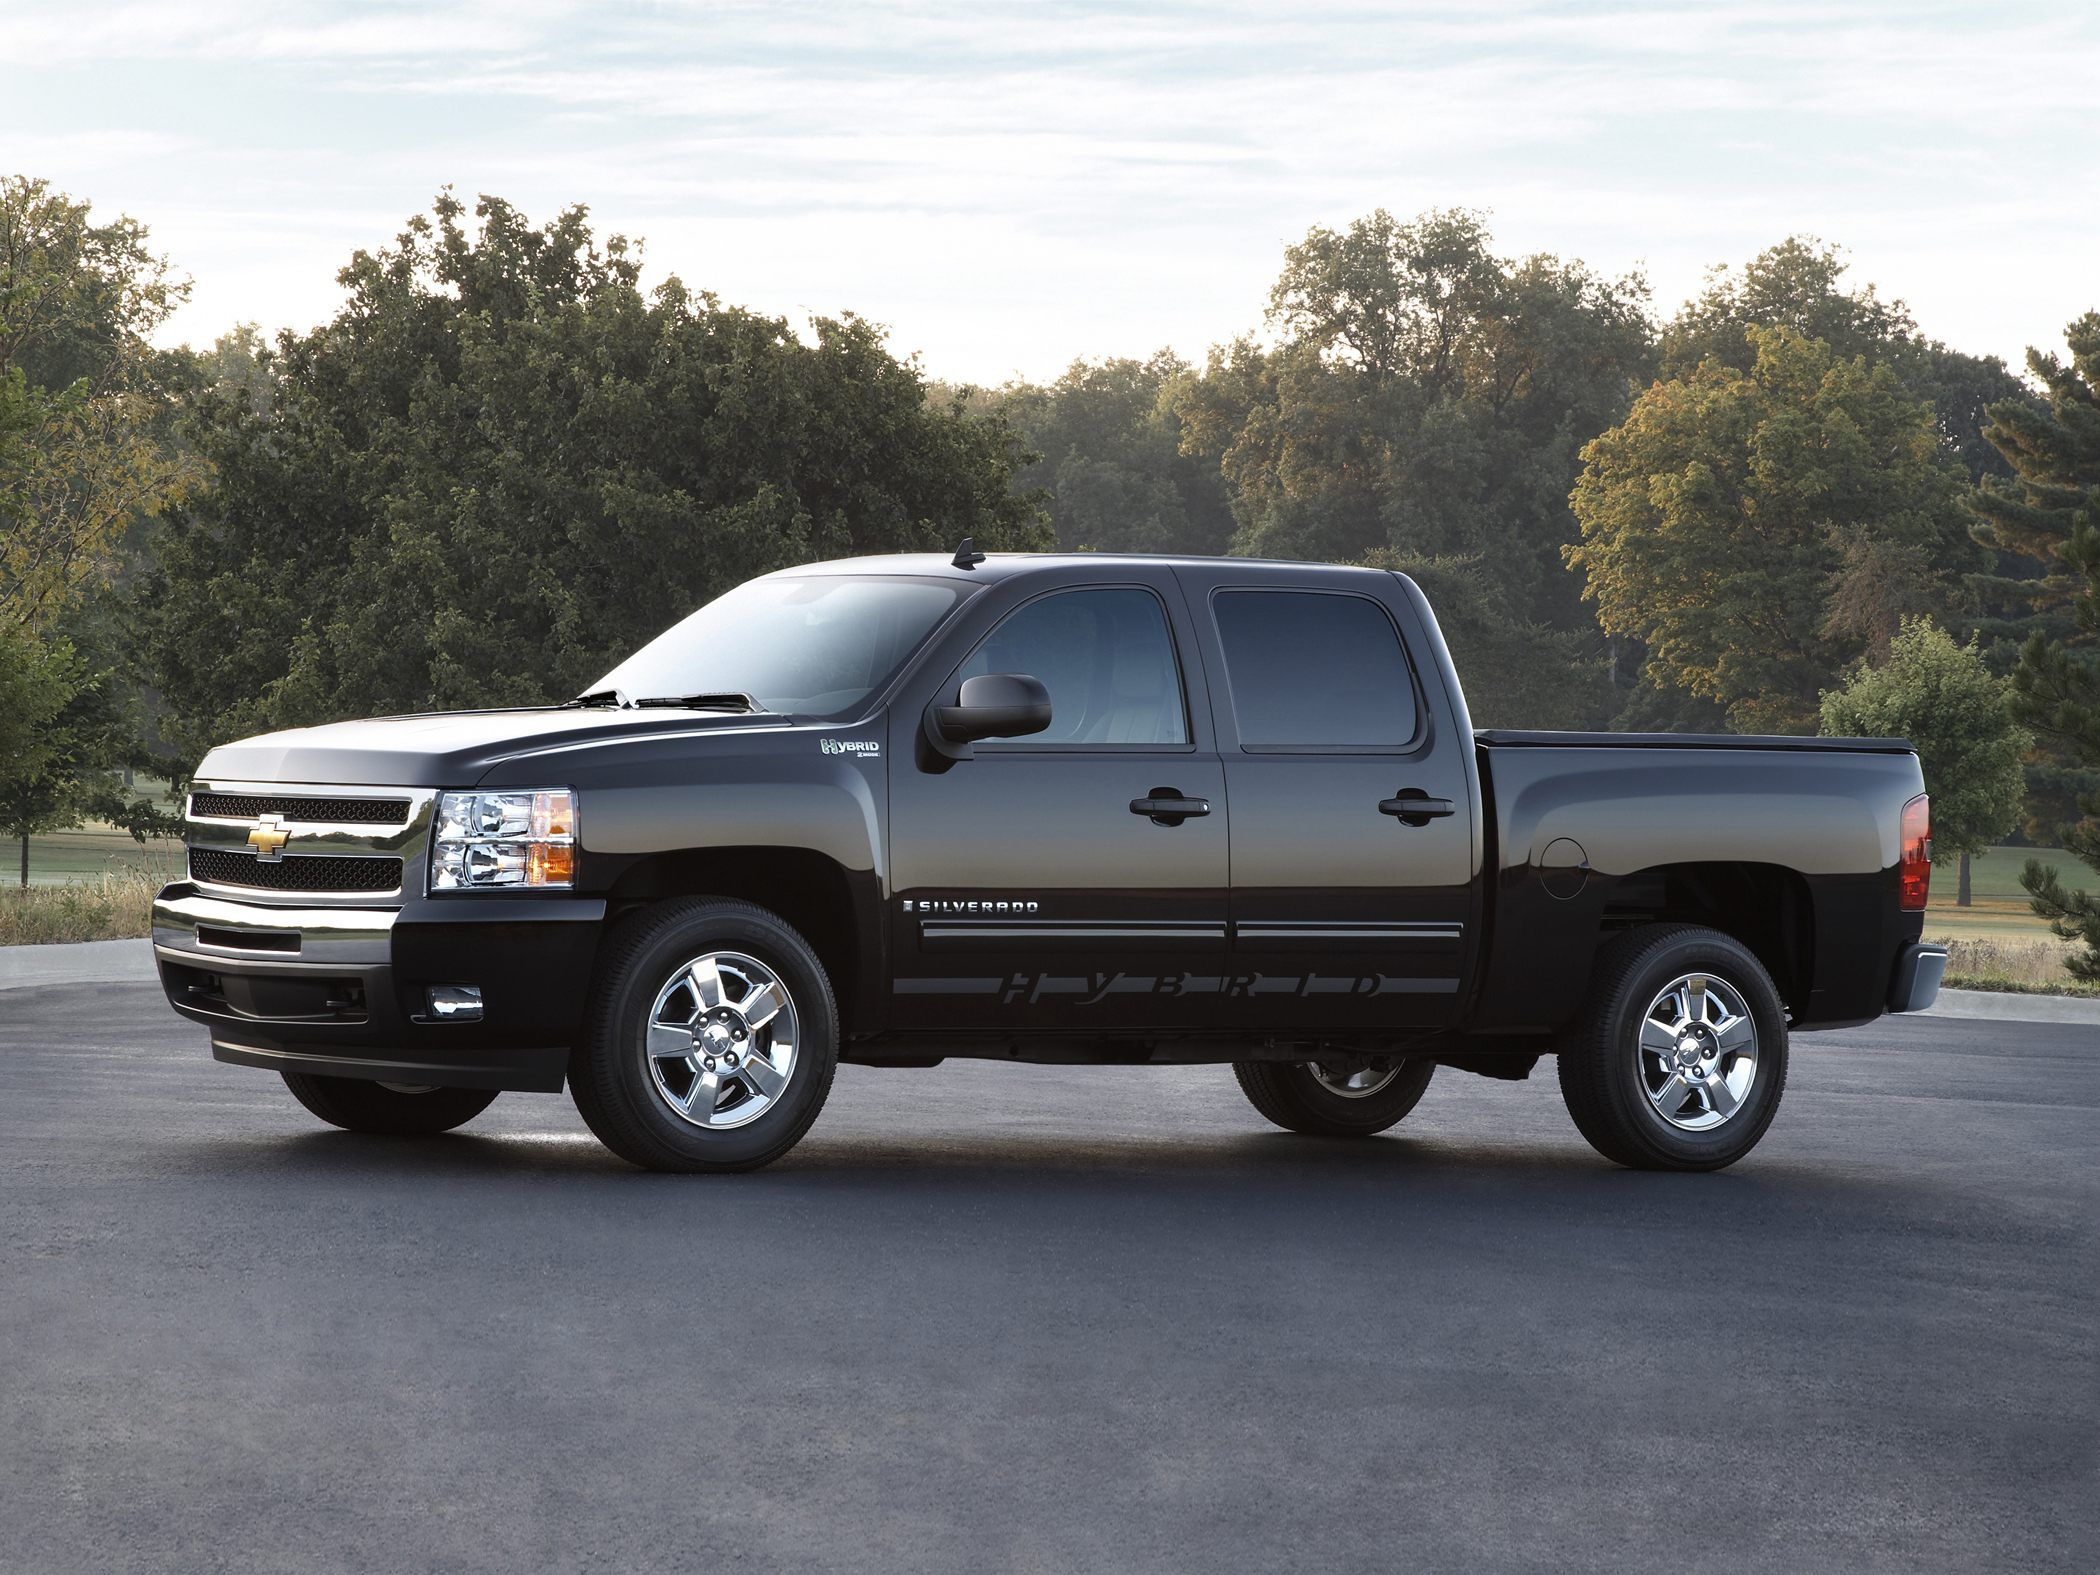 The Chevrolet Silverado 1500 Hybrid Introduced In 2004 Was The First Ever Hybrid Passenger Vehicle From Chevrolet Silverado Chevrolet Silverado 1500 Silverado